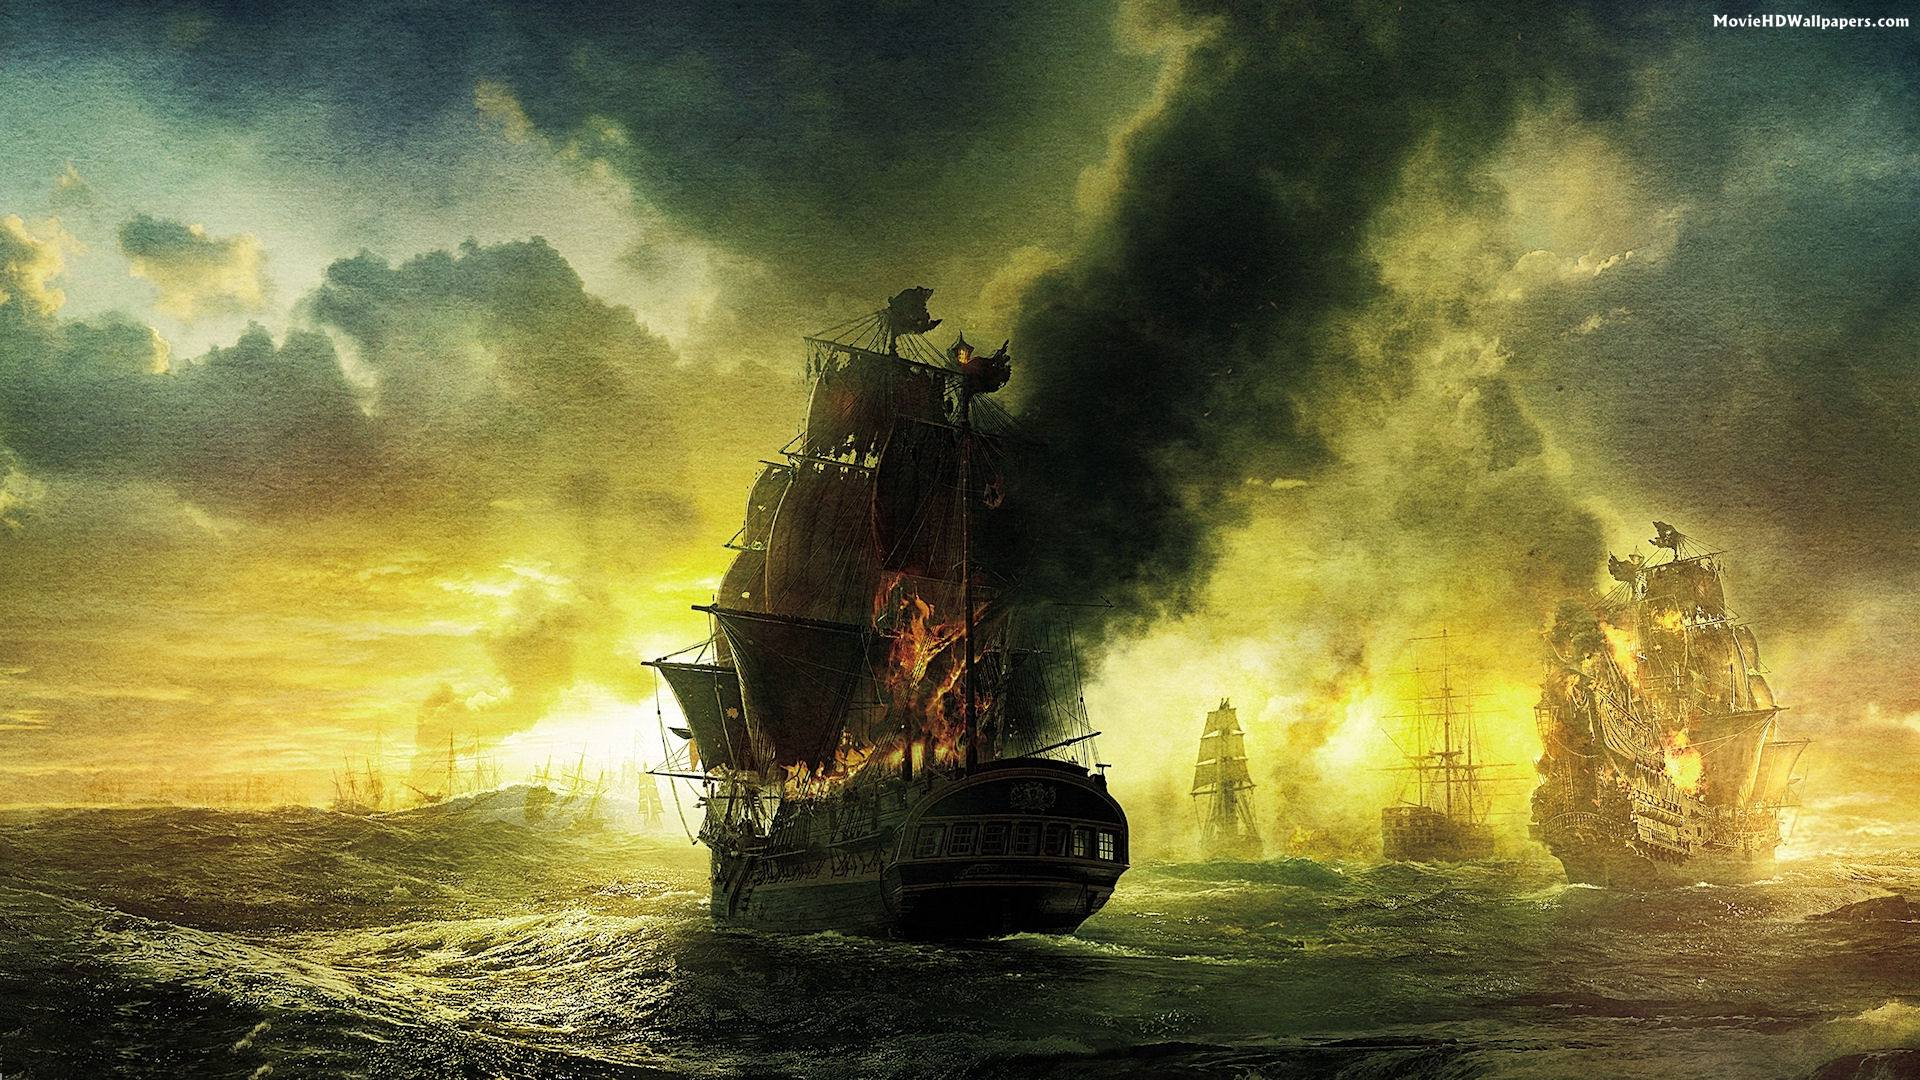 Pirates Of The Caribbean Background Posted By Ryan Anderson